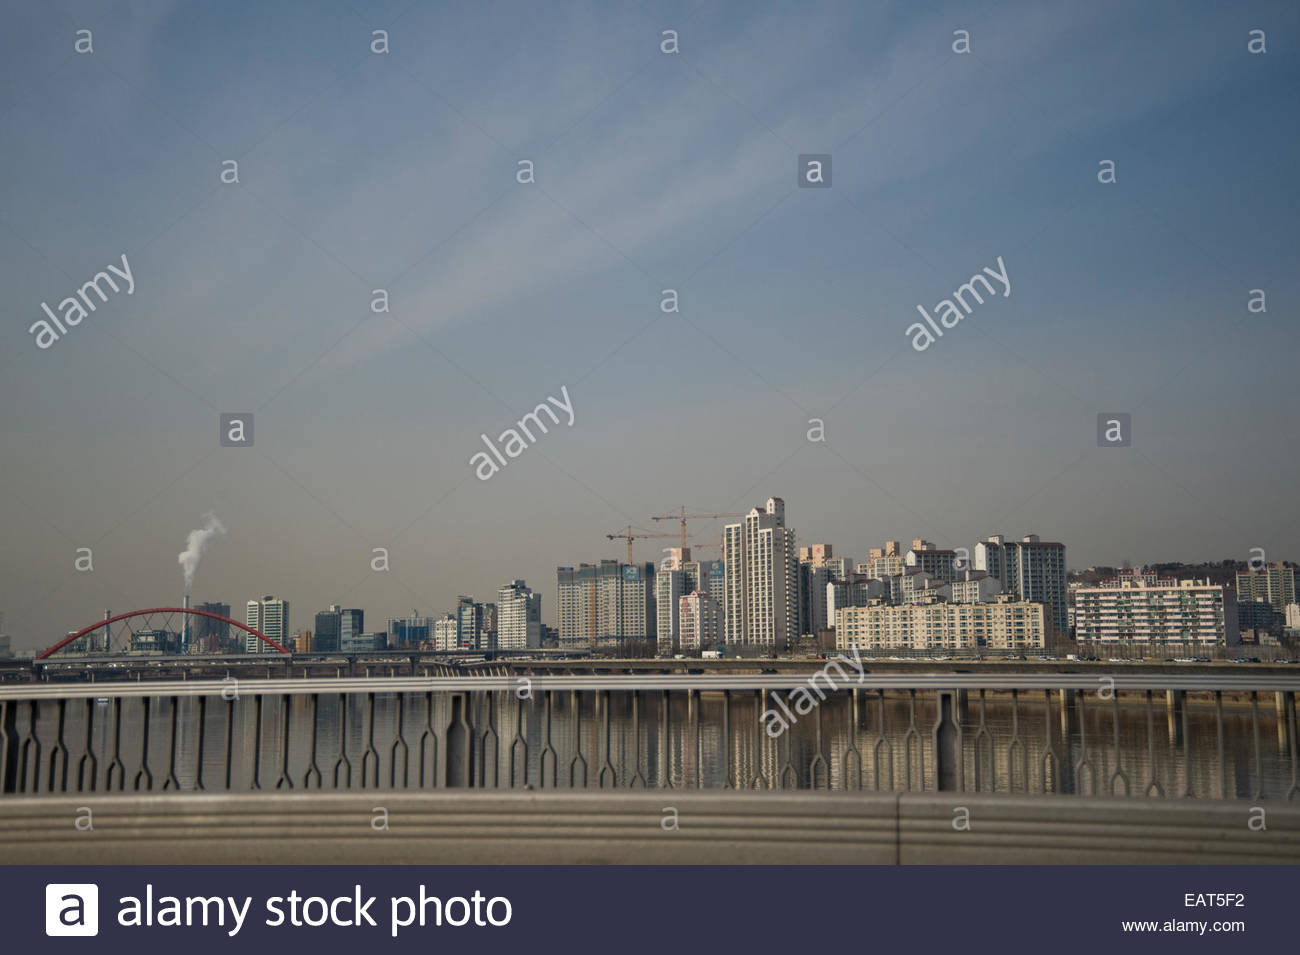 The city's skyline rises above the bridge over Han River. - Stock Image